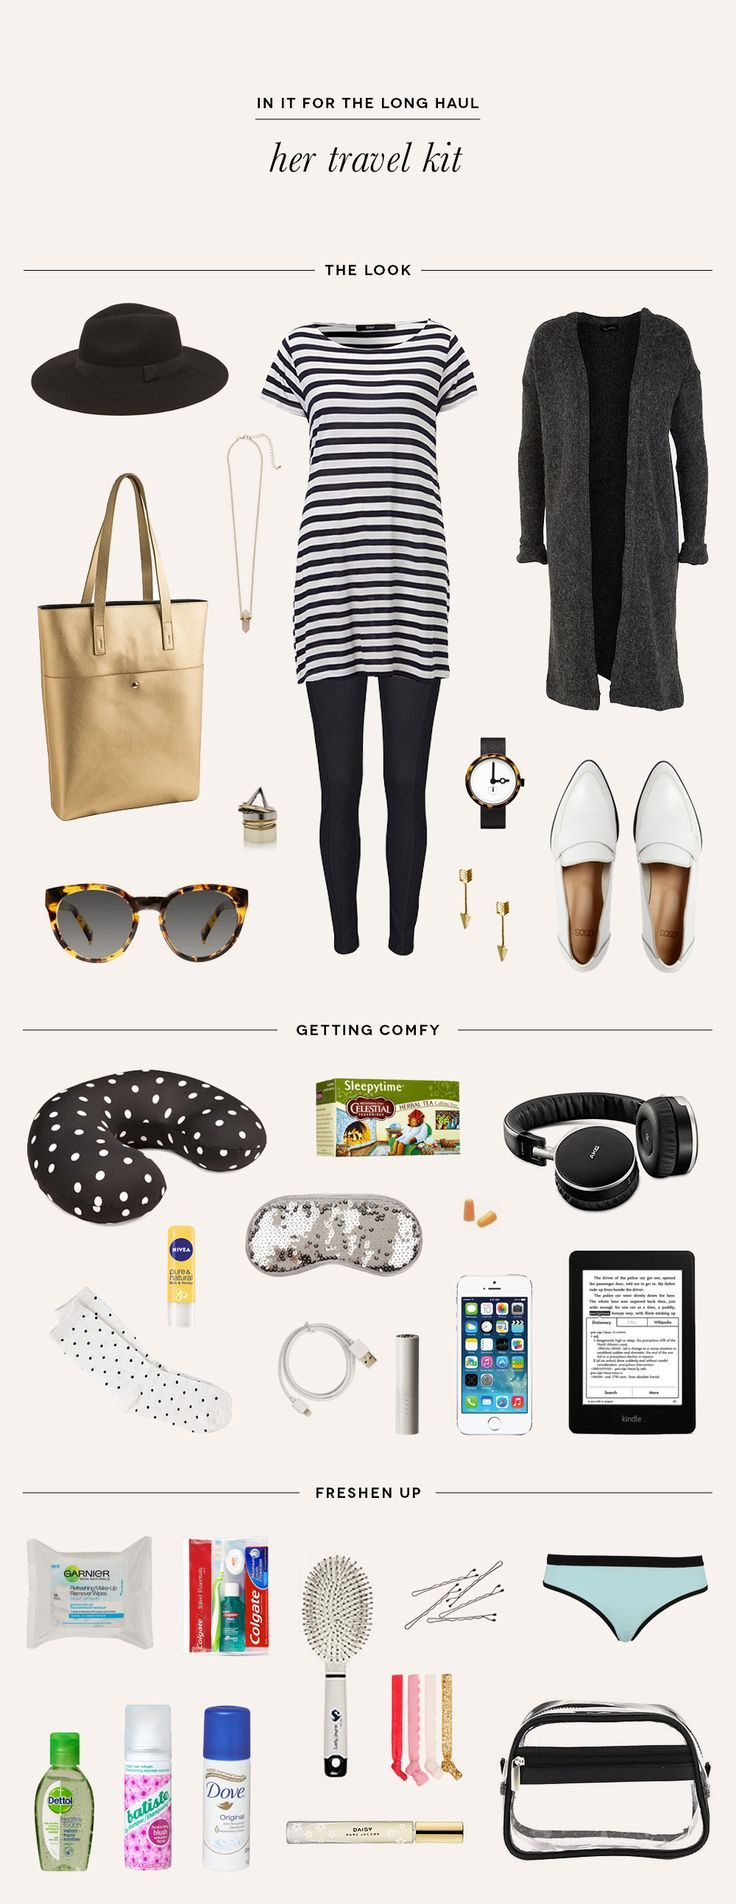 best 20 travel kits ideas on pinterest